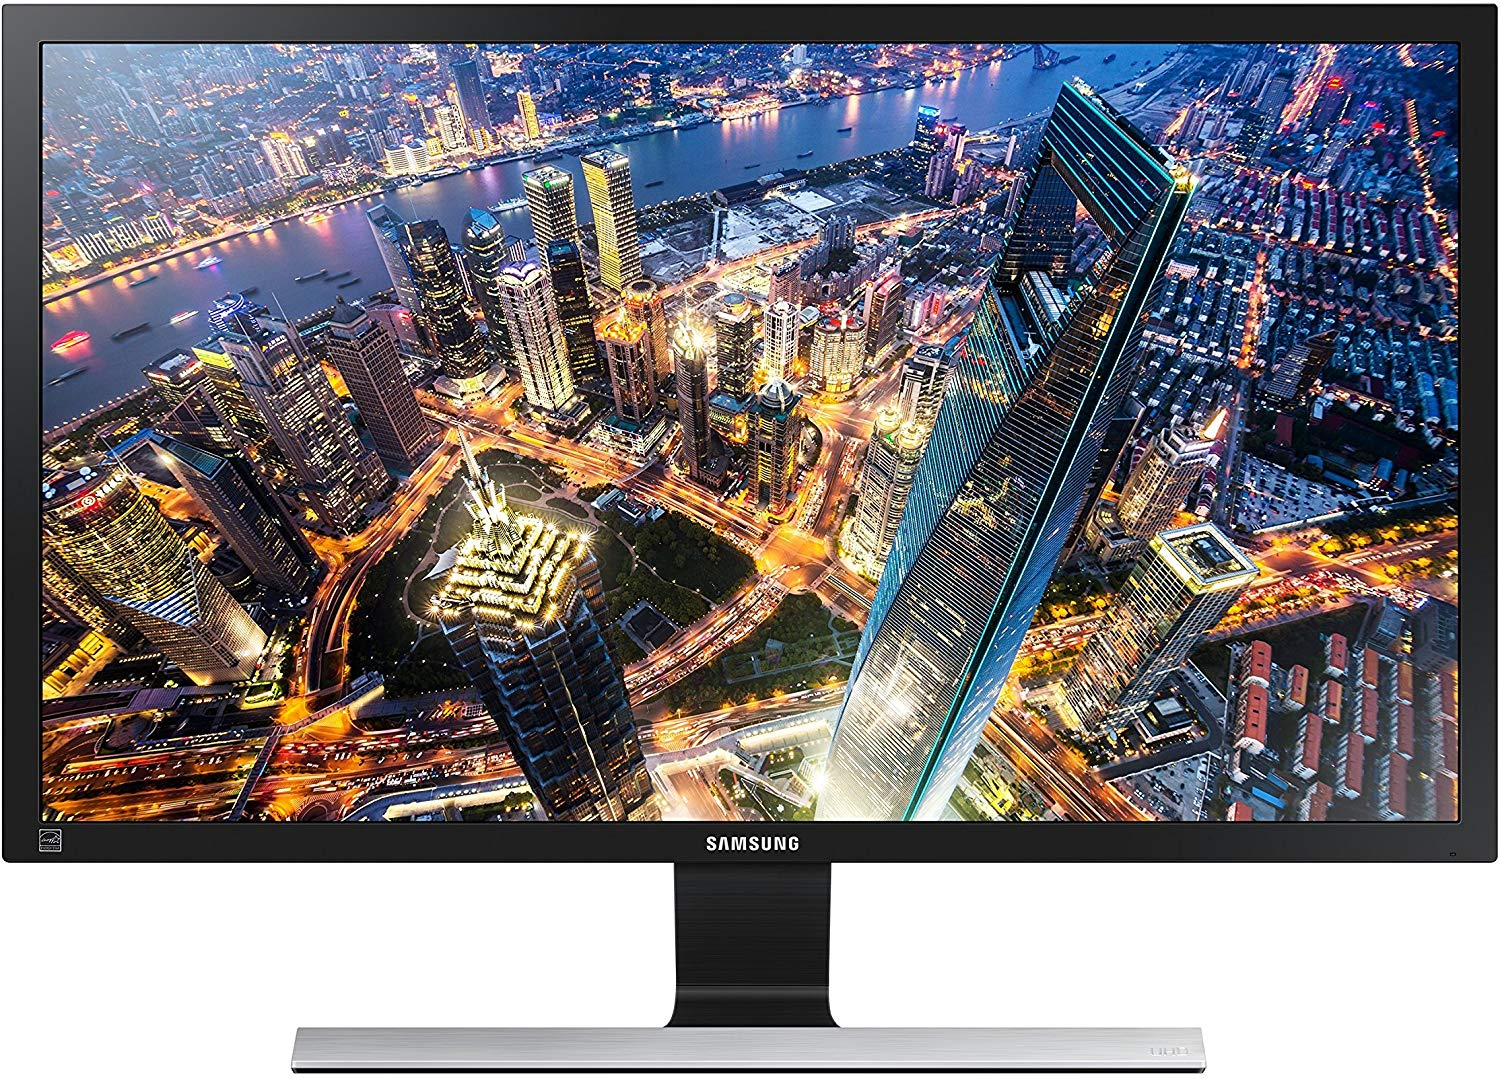 Samsung UHD Monitor amazon